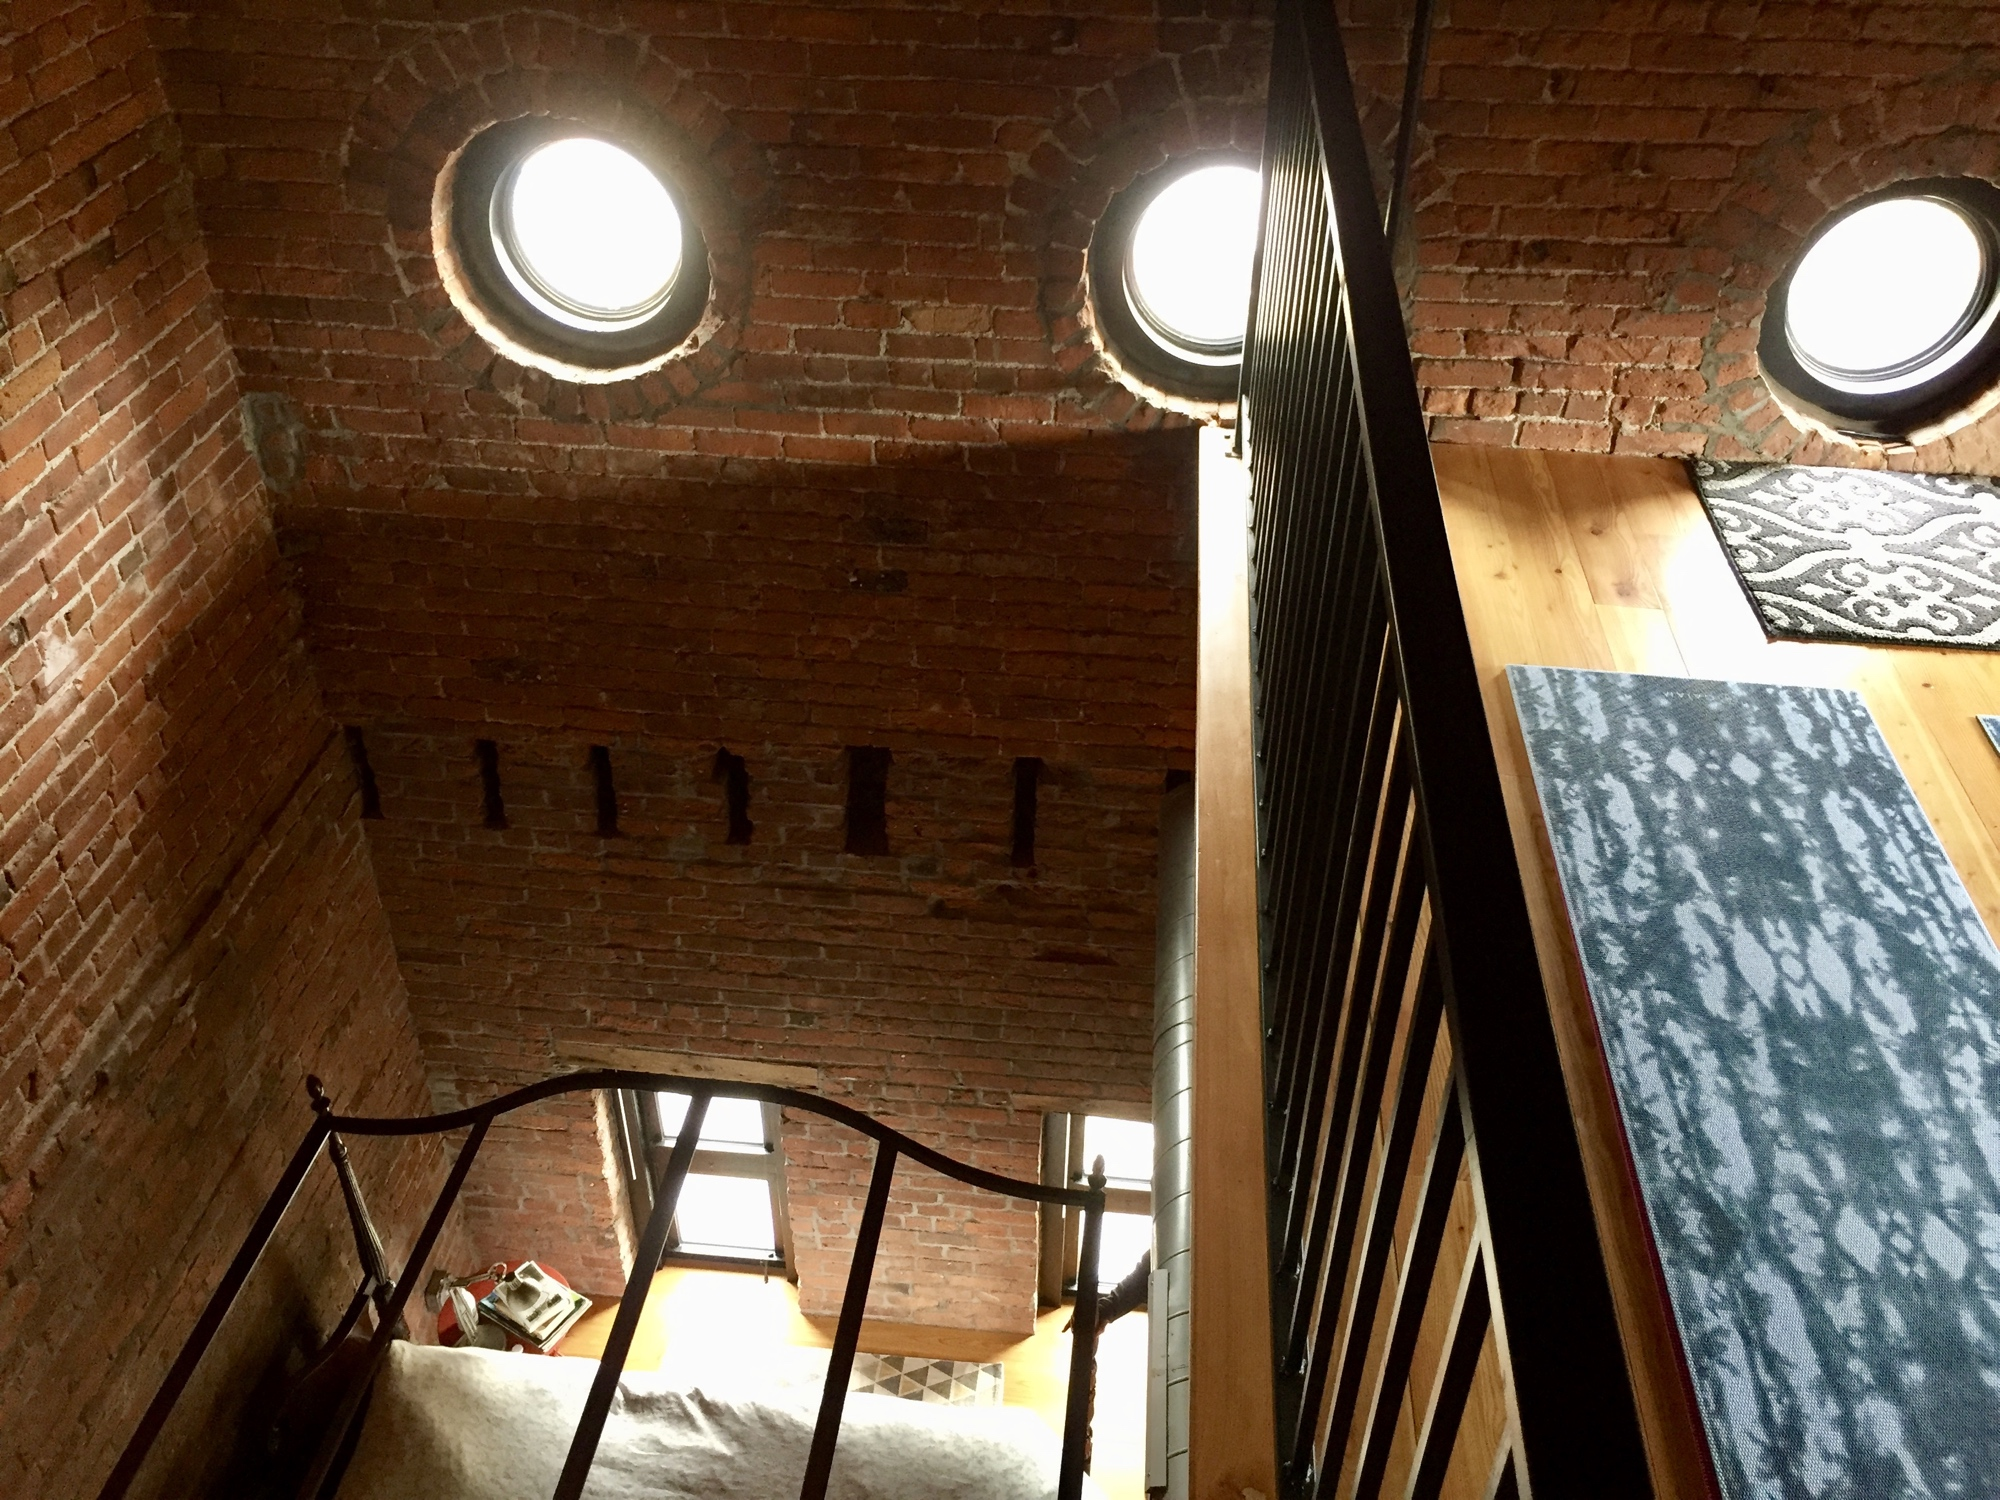 30 foot ceilings and a loft inside the steeple of this former Victorian church building Photo by Barbra Revill